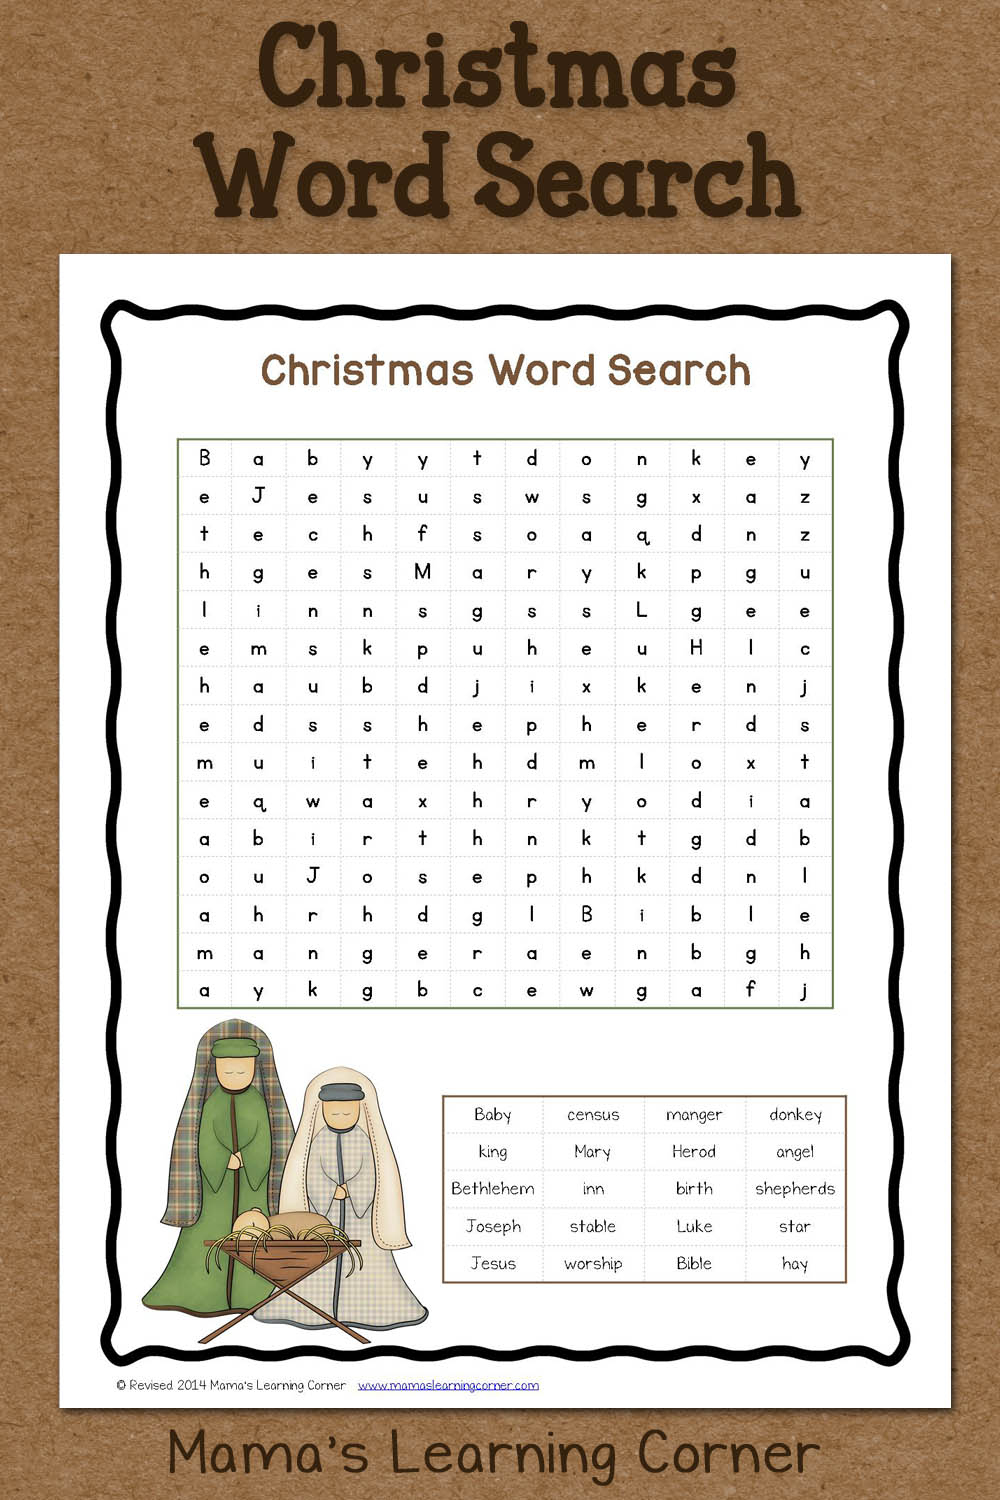 Christmas Word Search: Free Printable - Mamas Learning Corner - Printable Bible Puzzles For Preschoolers